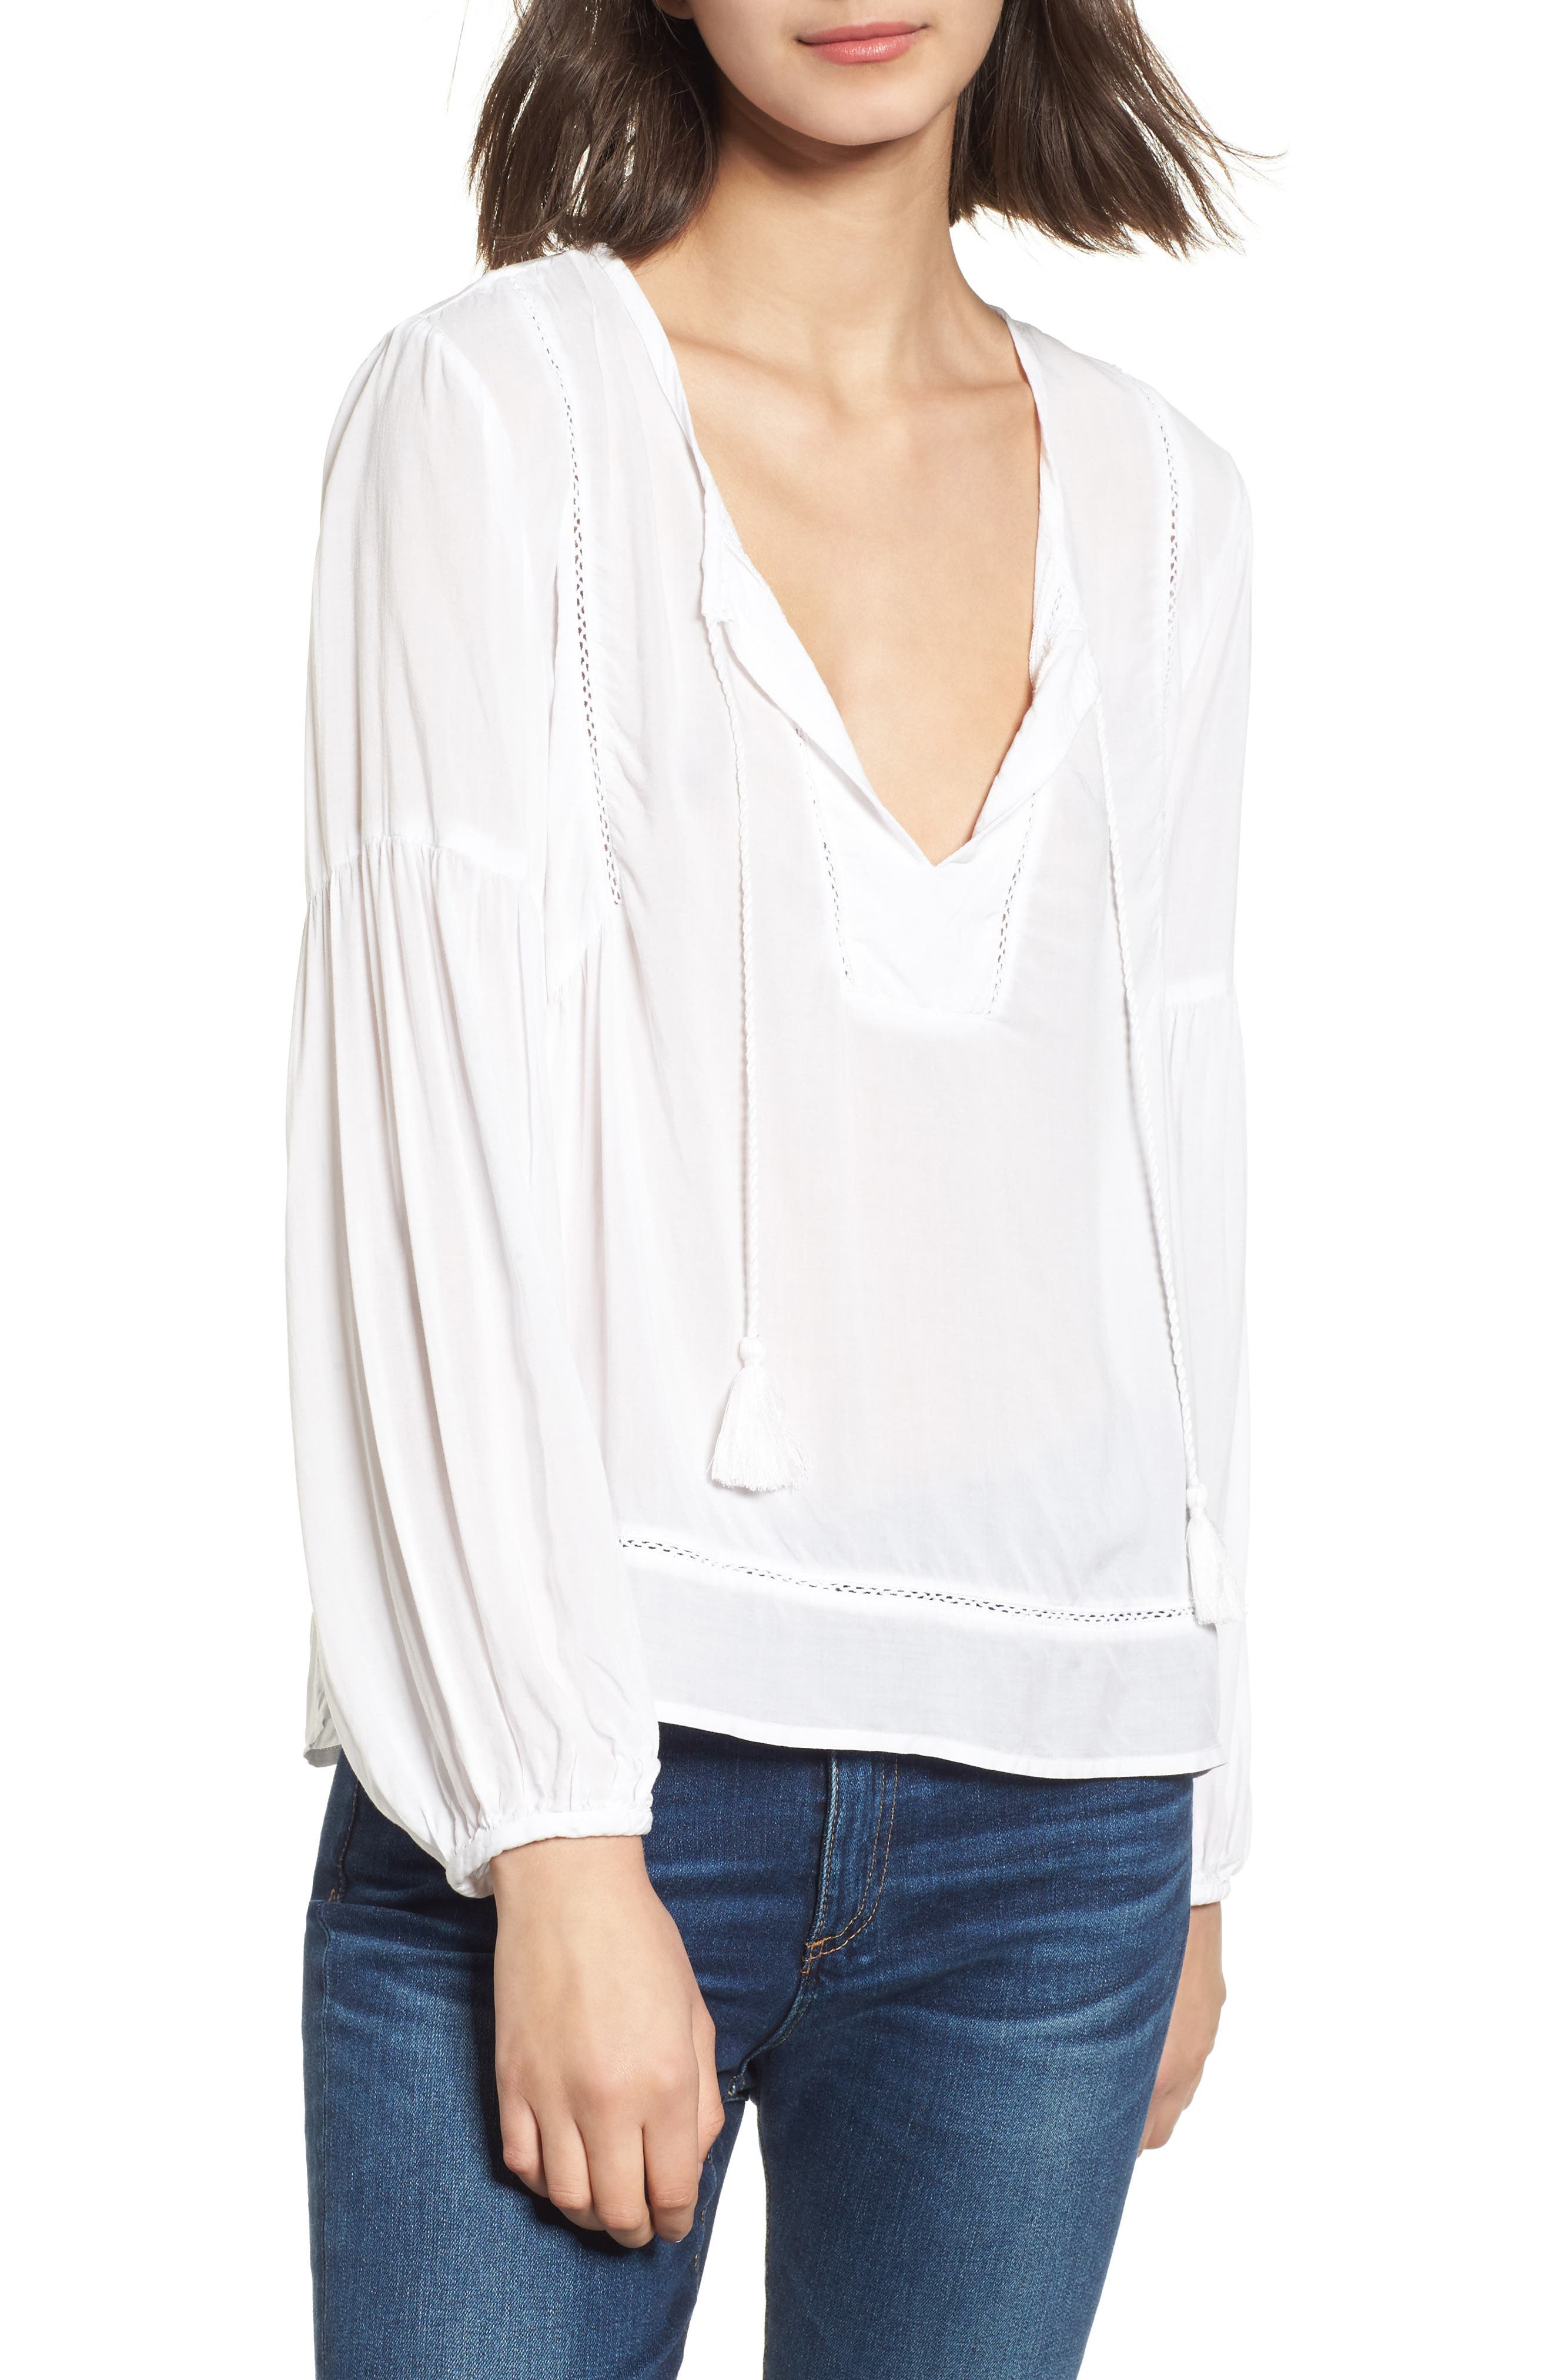 Tassel Woven Blouse,                             Main thumbnail 1, color,                             White